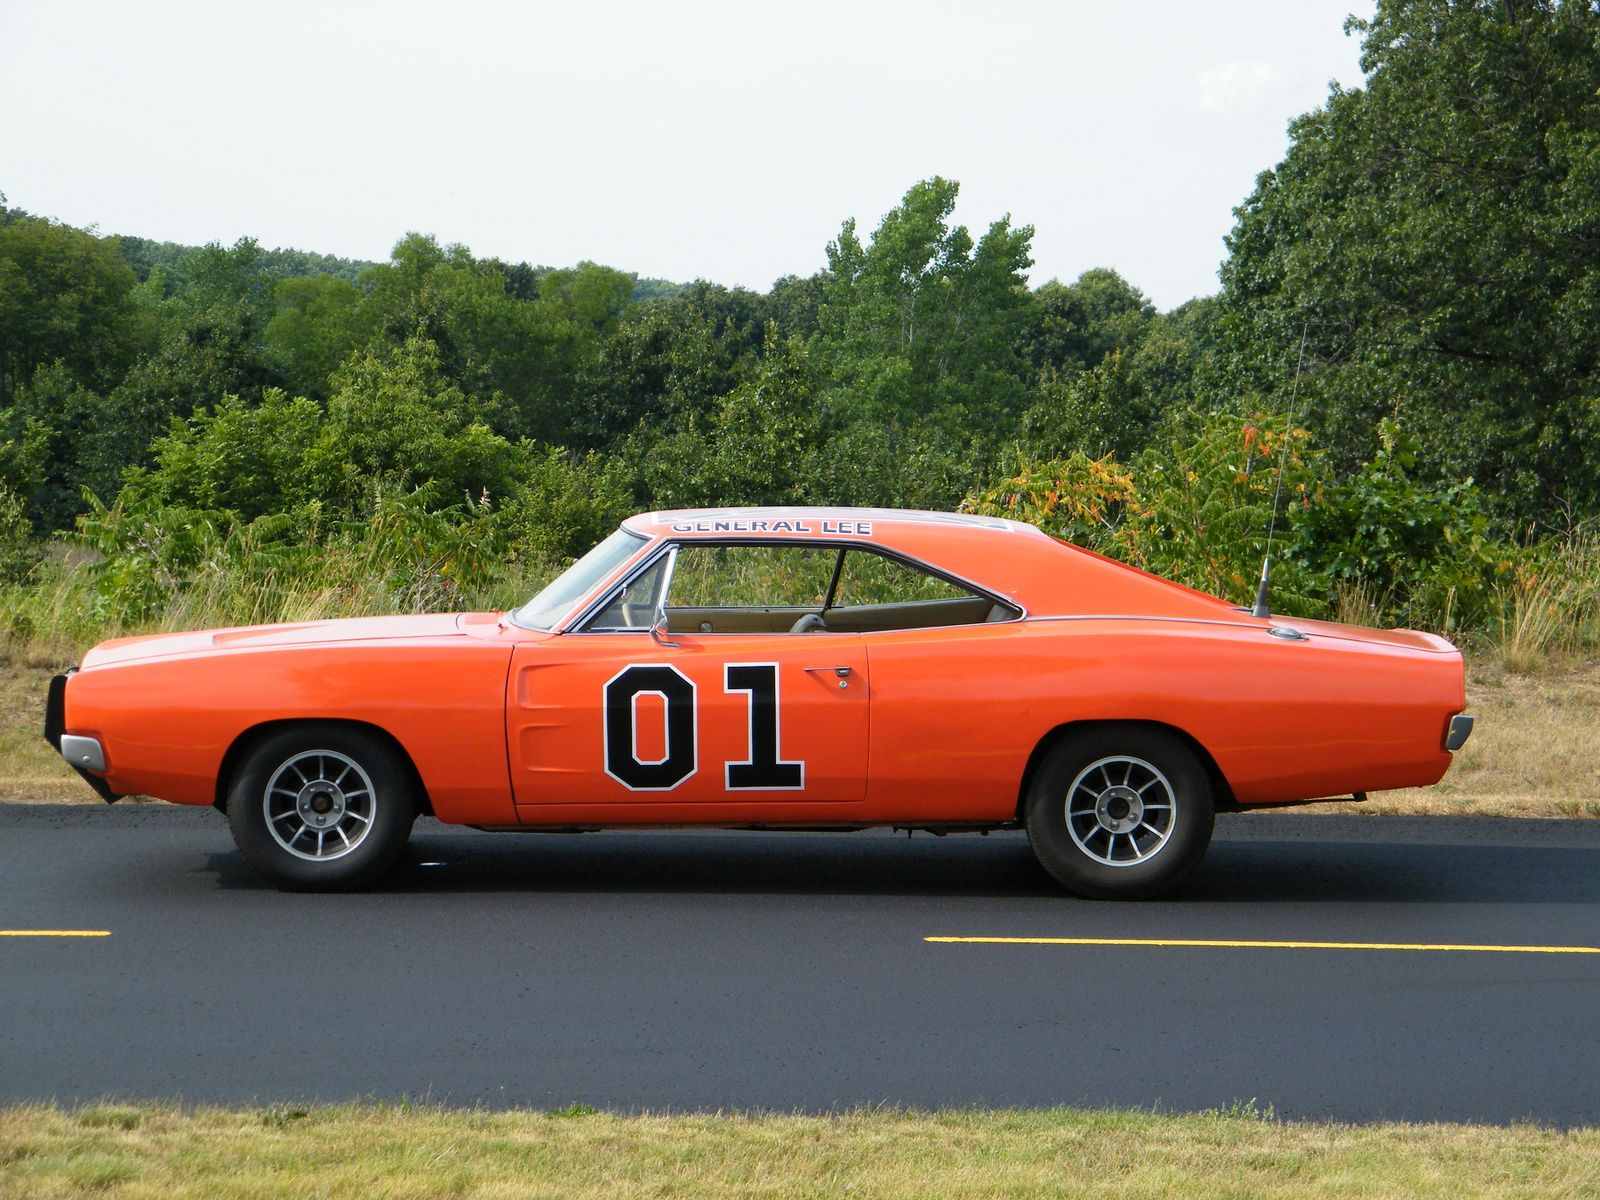 1969_dodge_charger-pic-3308851642083706135.jpeg (1600×1200)